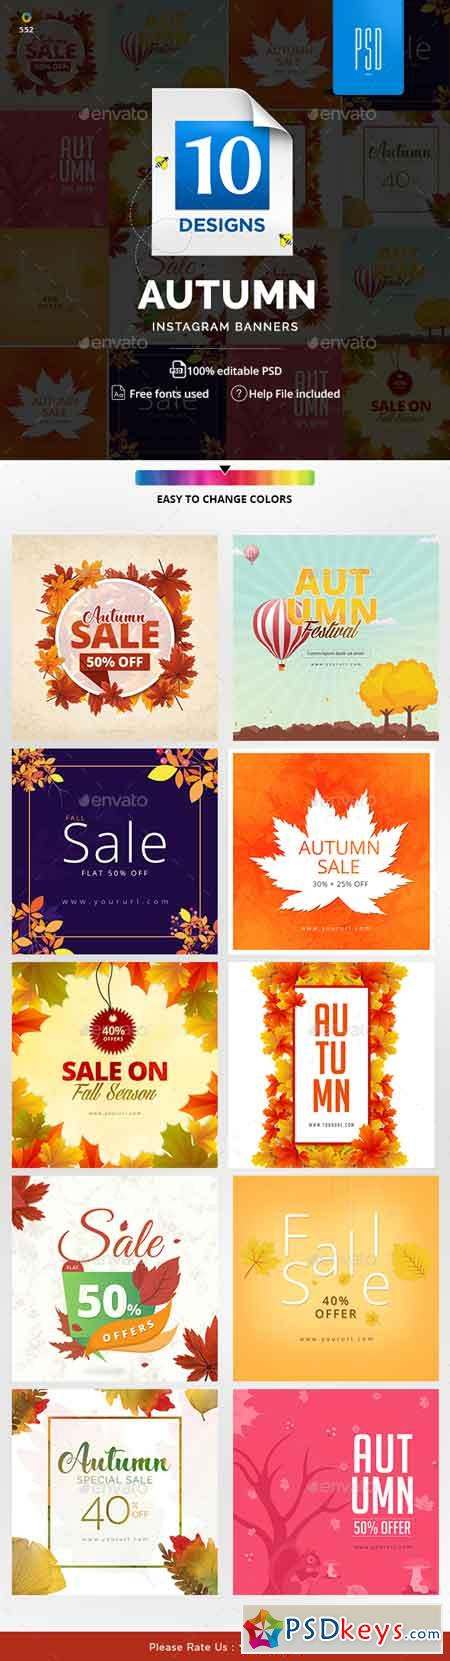 Autumn Sale Instagram Templates 20593121